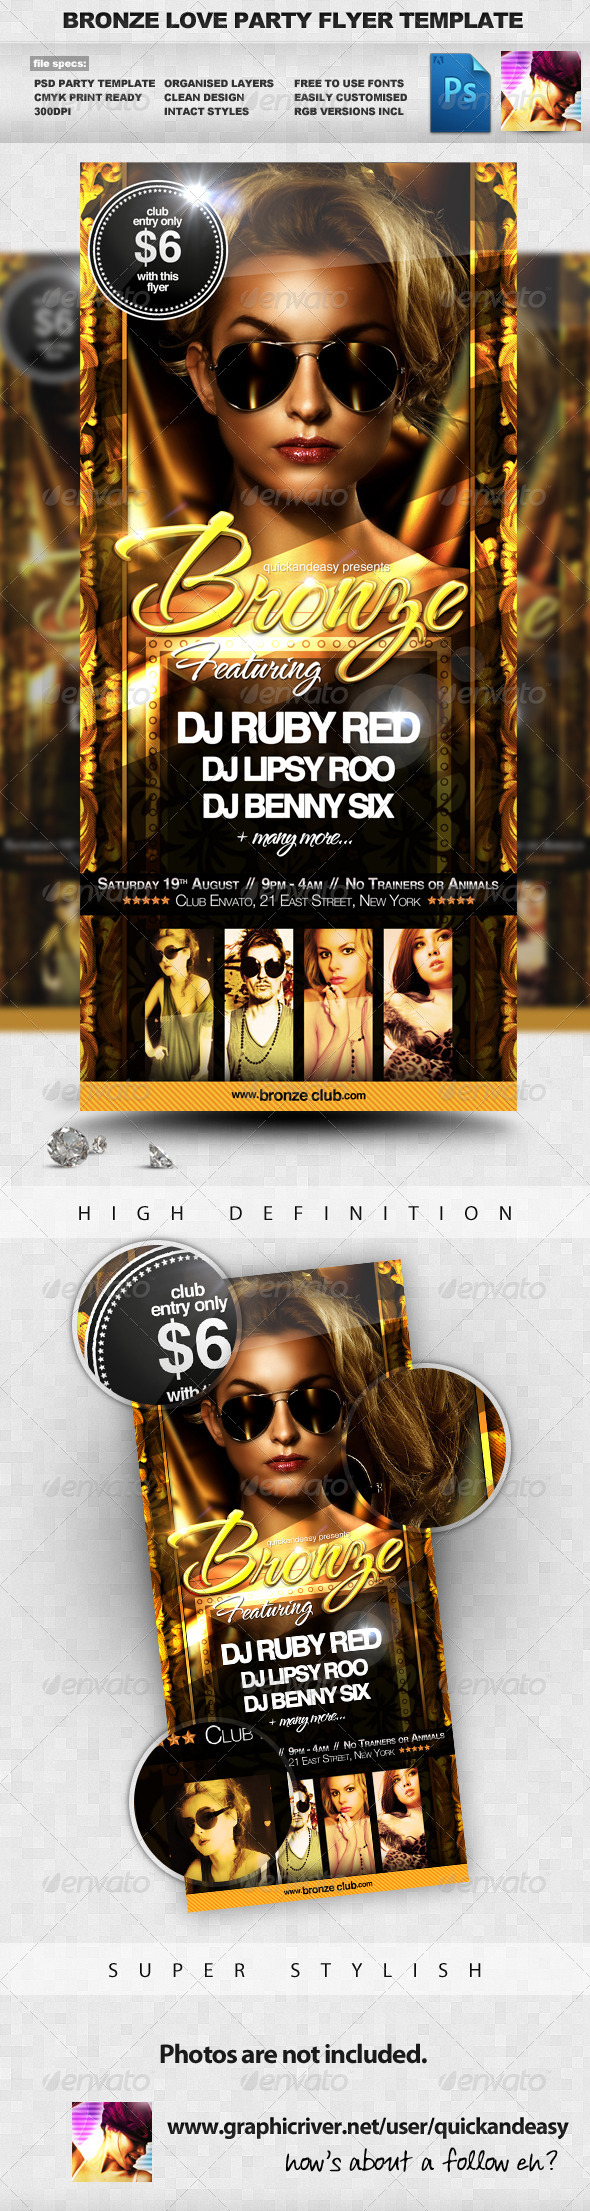 Graphic River Bronze Love Gold & Sexy Night Club Party Flyer Print Templates -  Flyers  Events  Clubs & Parties 299683